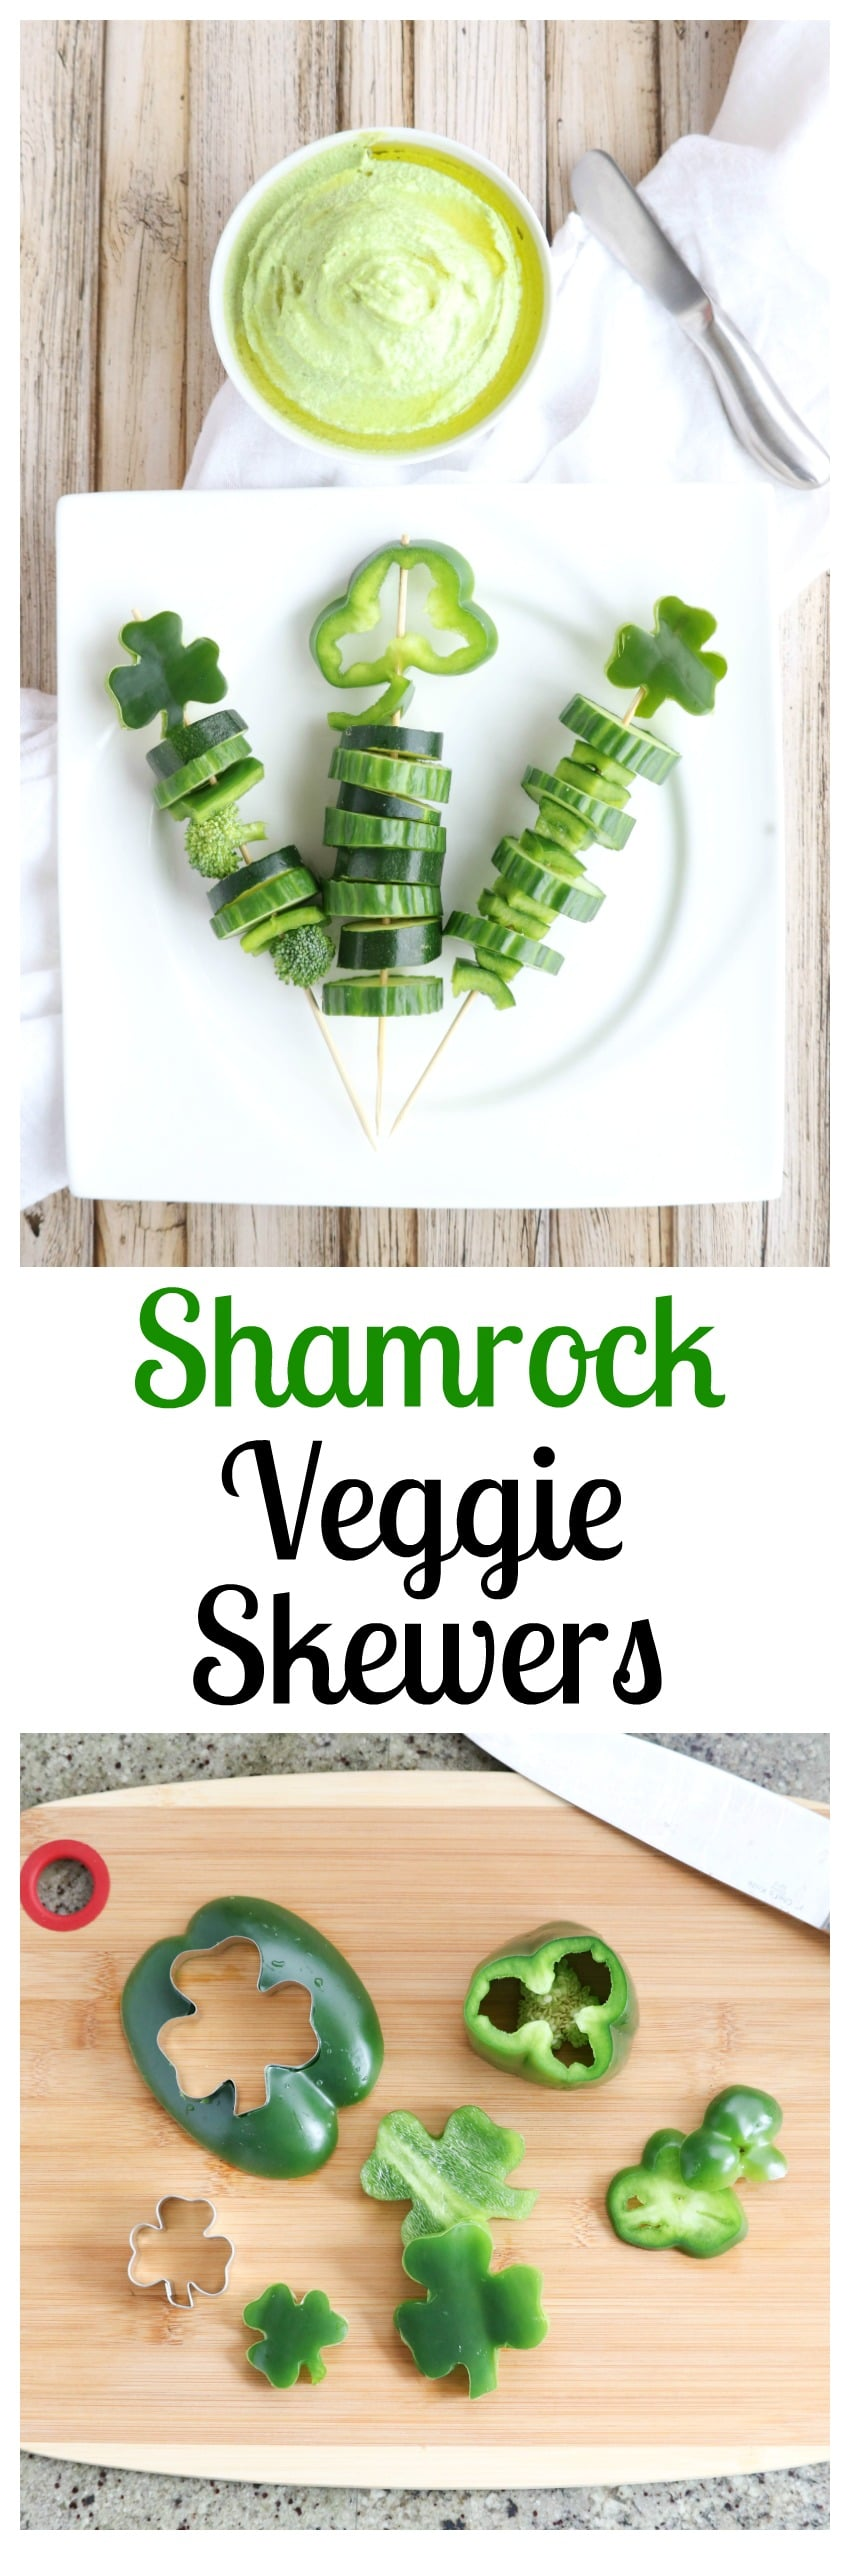 These easy Shamrock Veggie Skewers are a perfect St. Patrick's Day appetizer for parties - and a fun, healthy after-school snack!   www.TwoHealthyKitchens.com